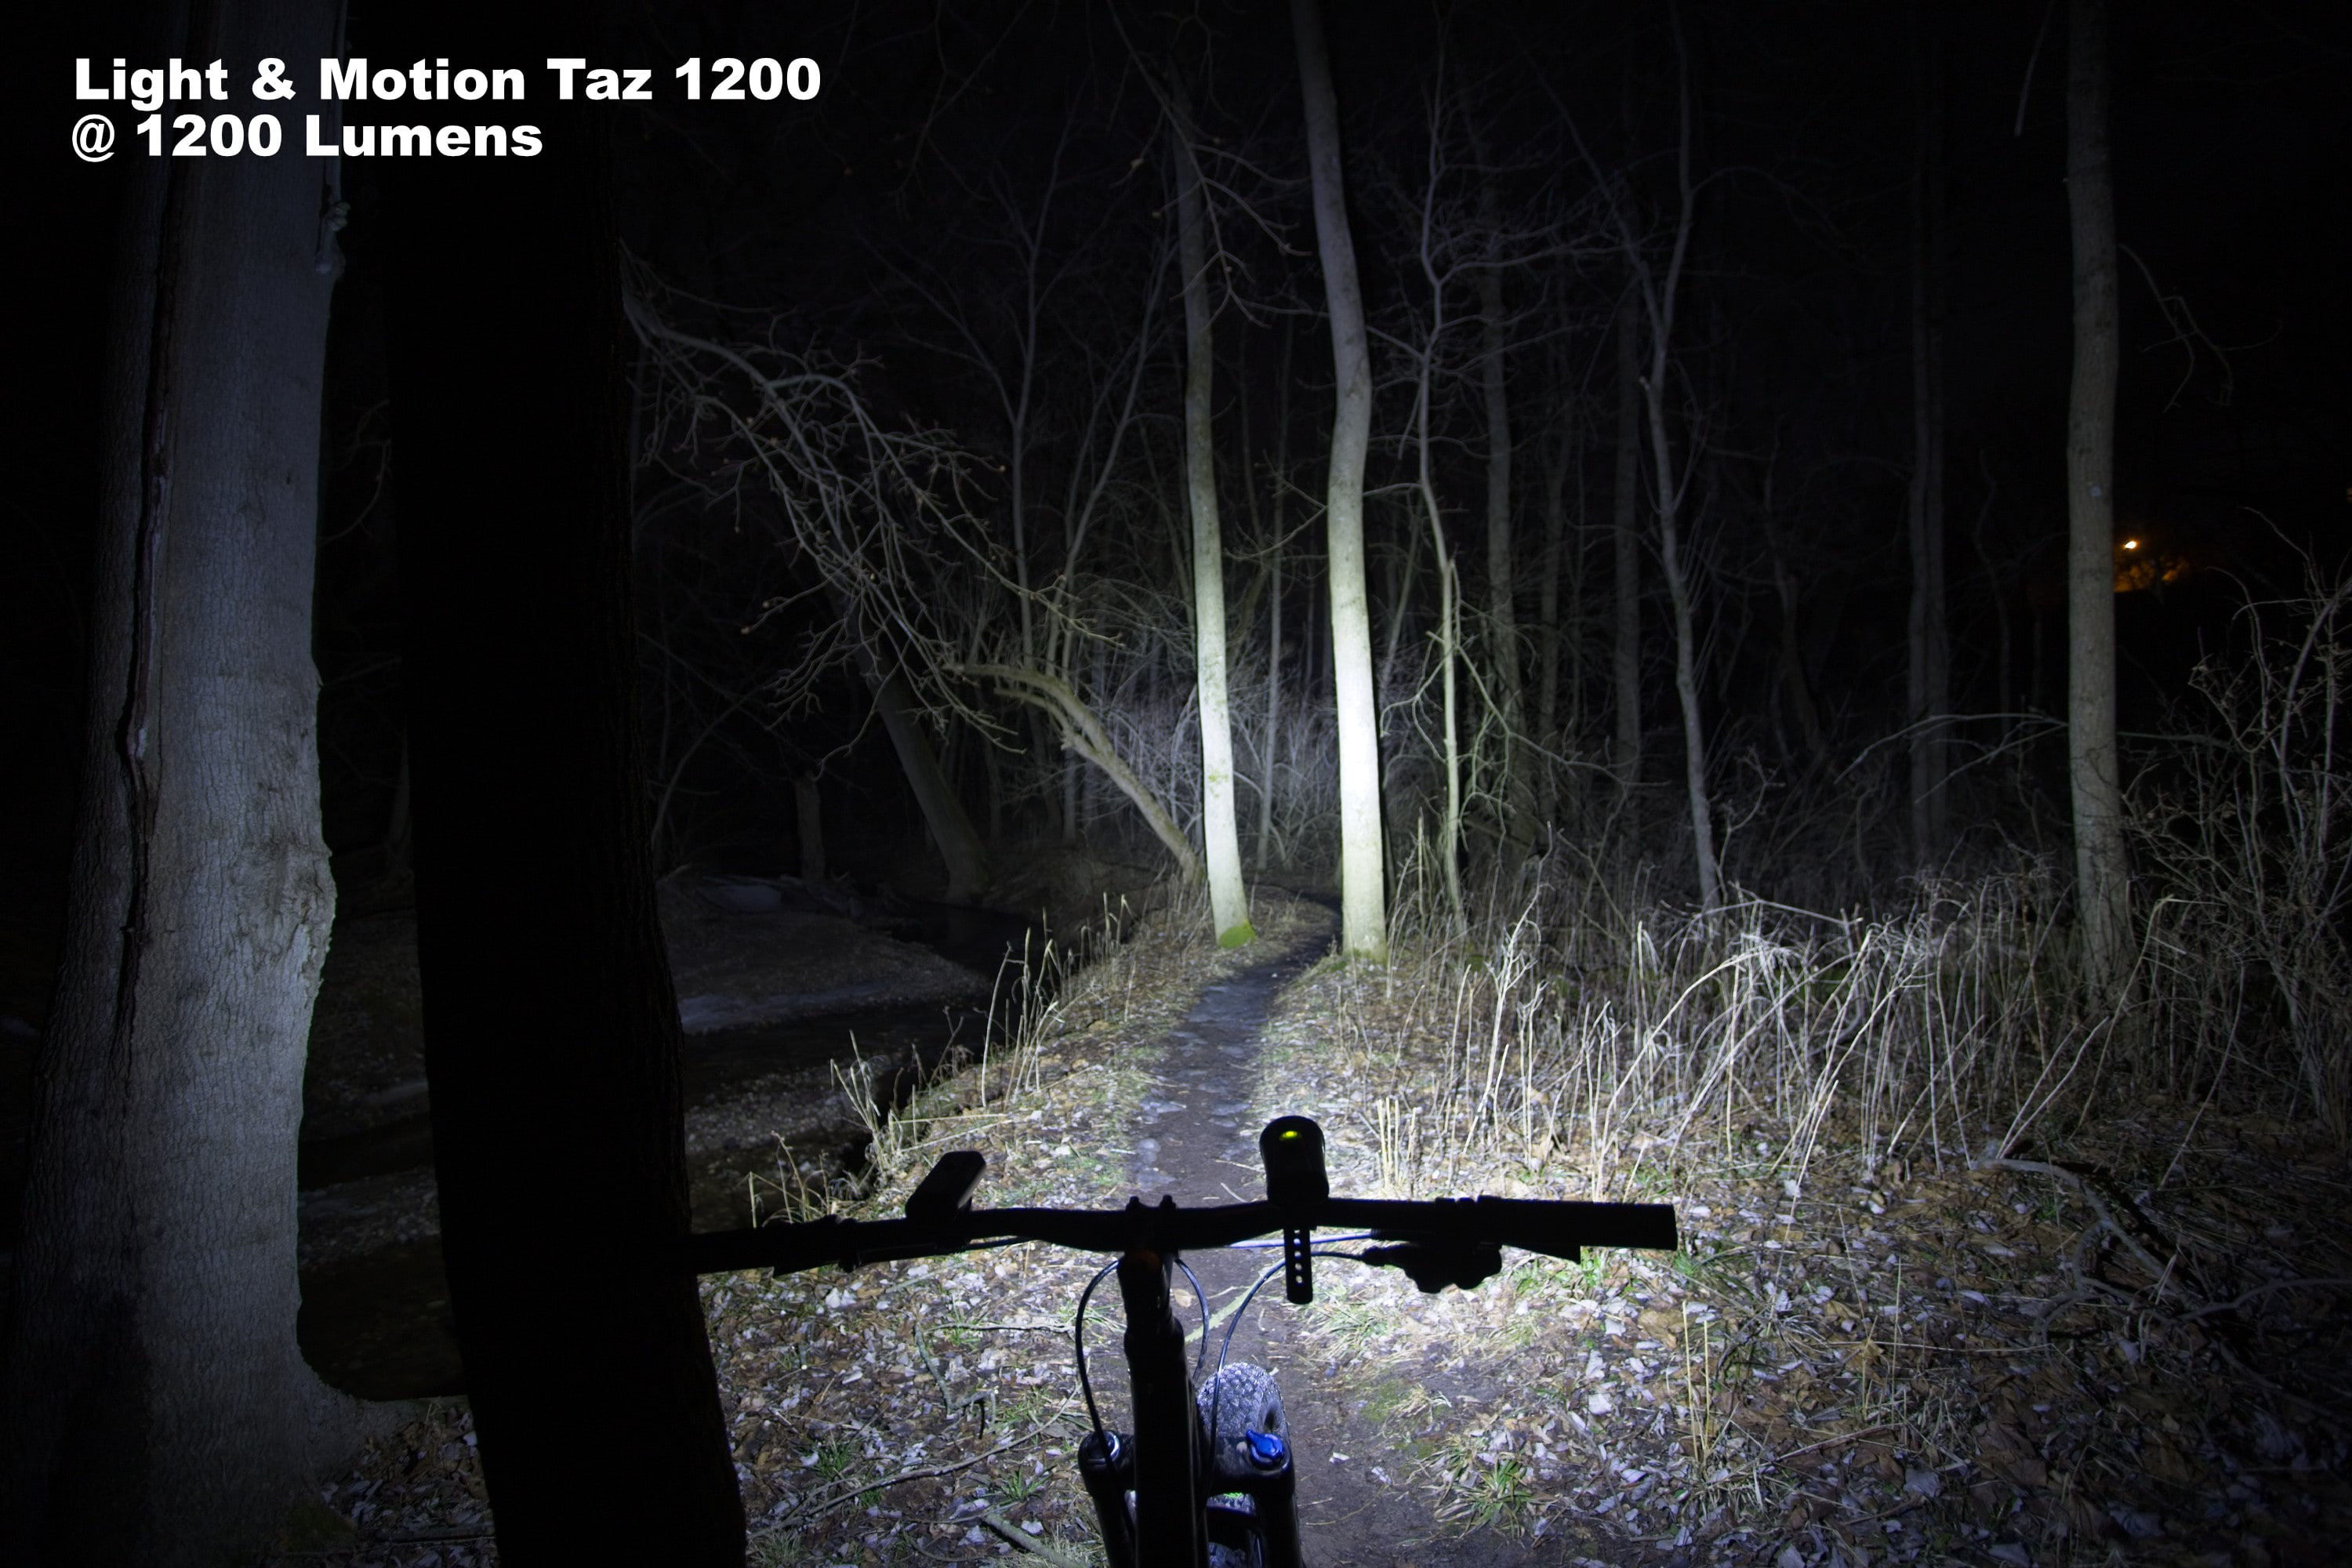 Taz at 1200 Lumens